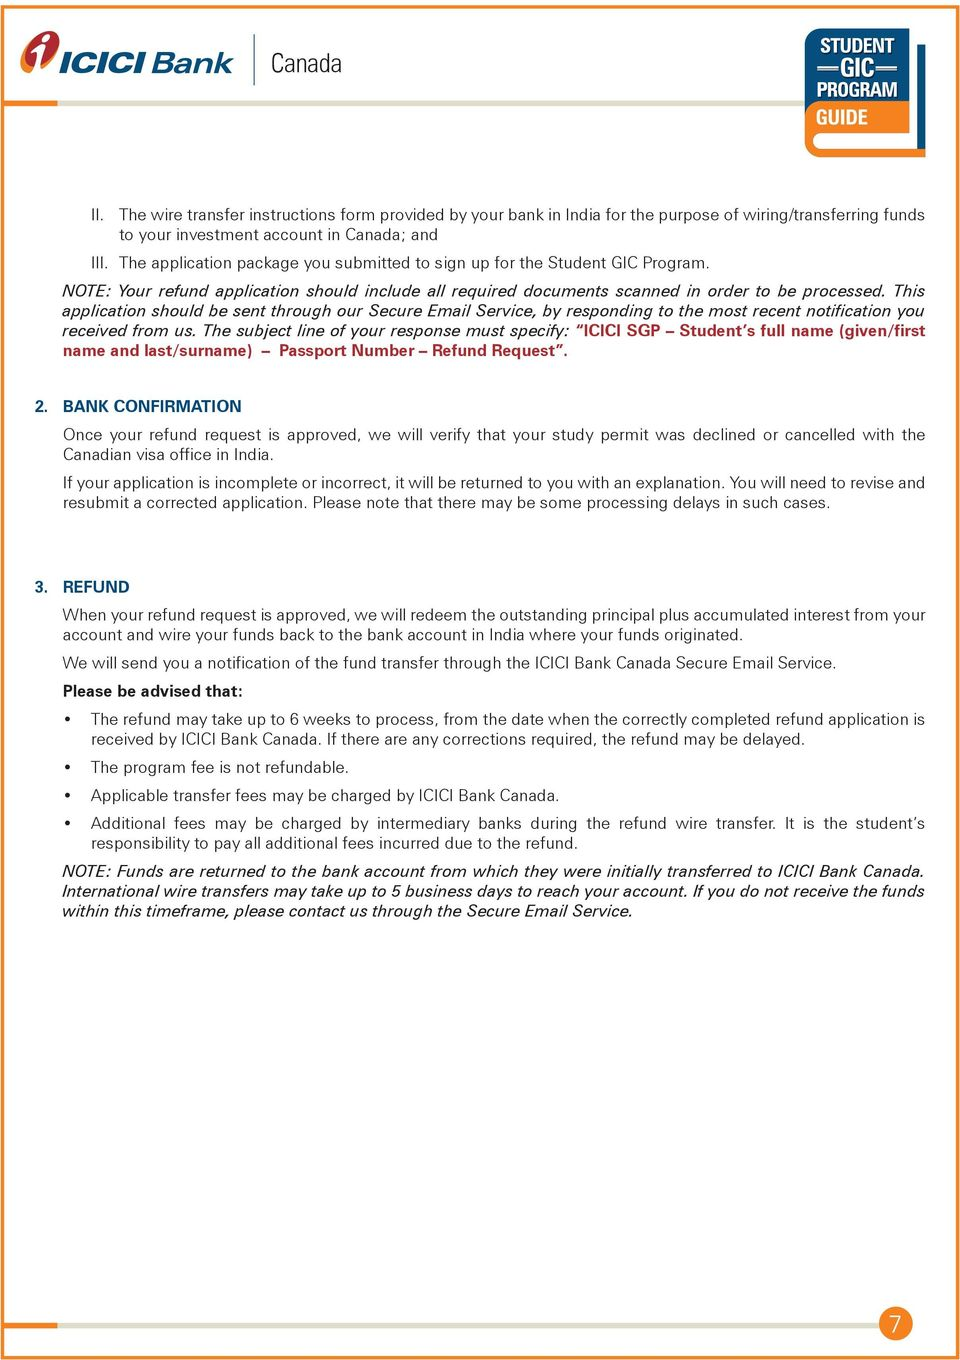 ICICI Bank Canada Student GIC Program Guide Complete Steps - PDF